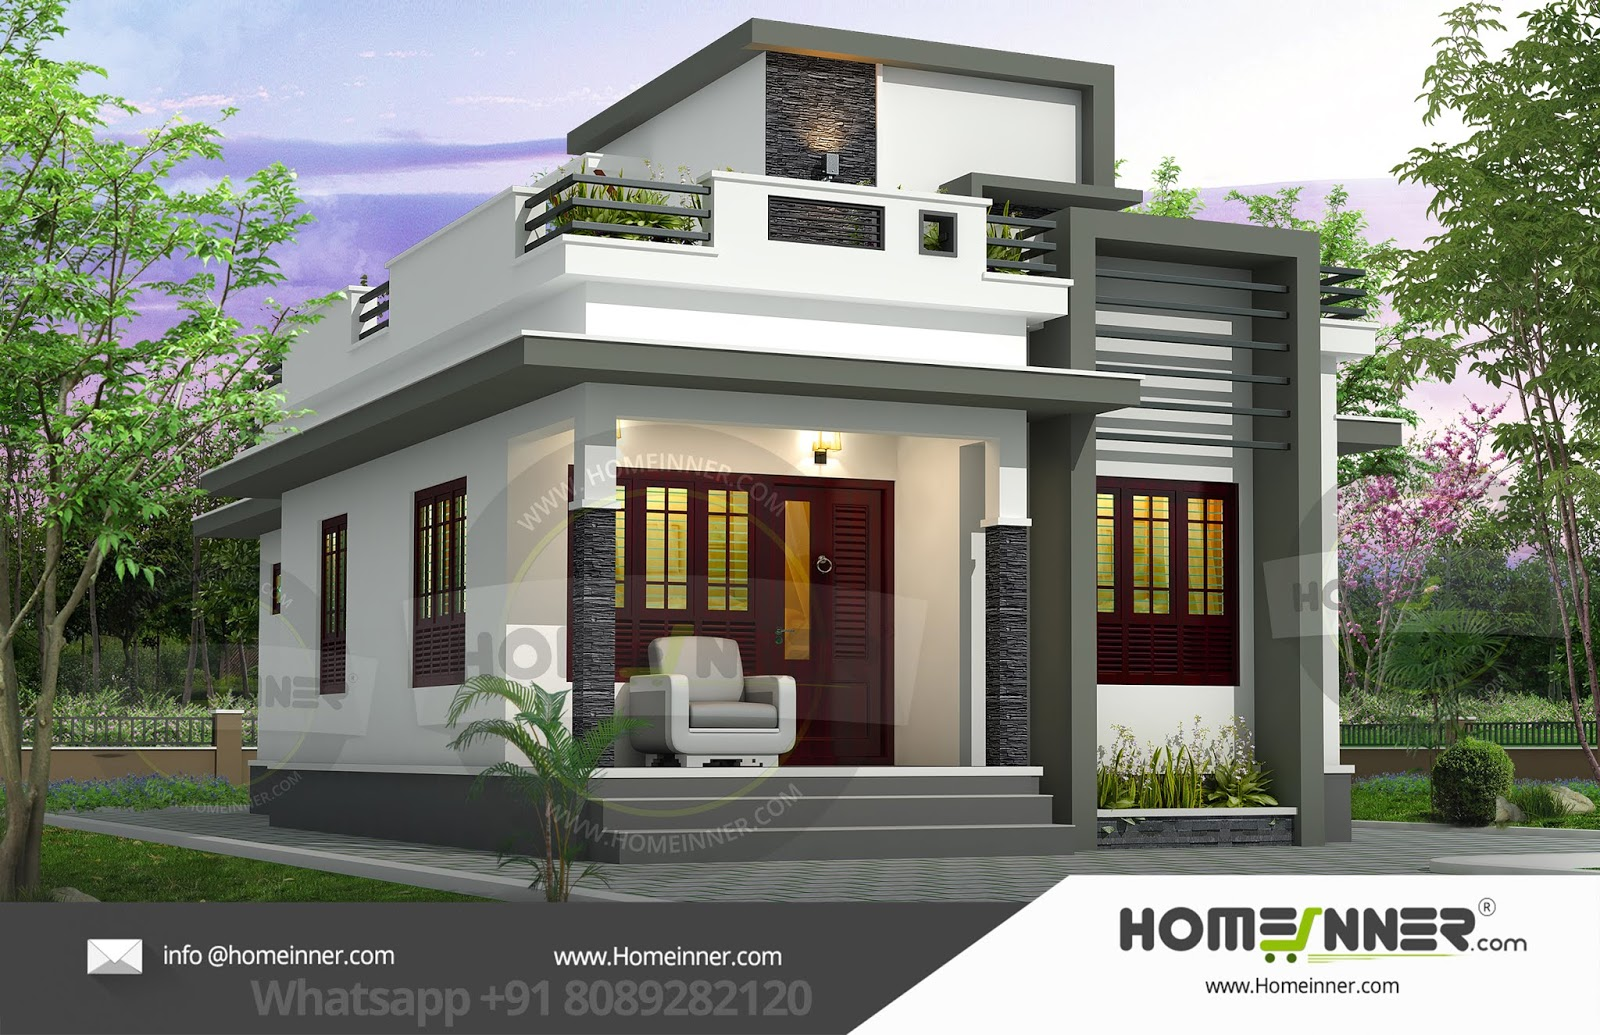 Imphal West 10 Lakh small modern 2 story house plans